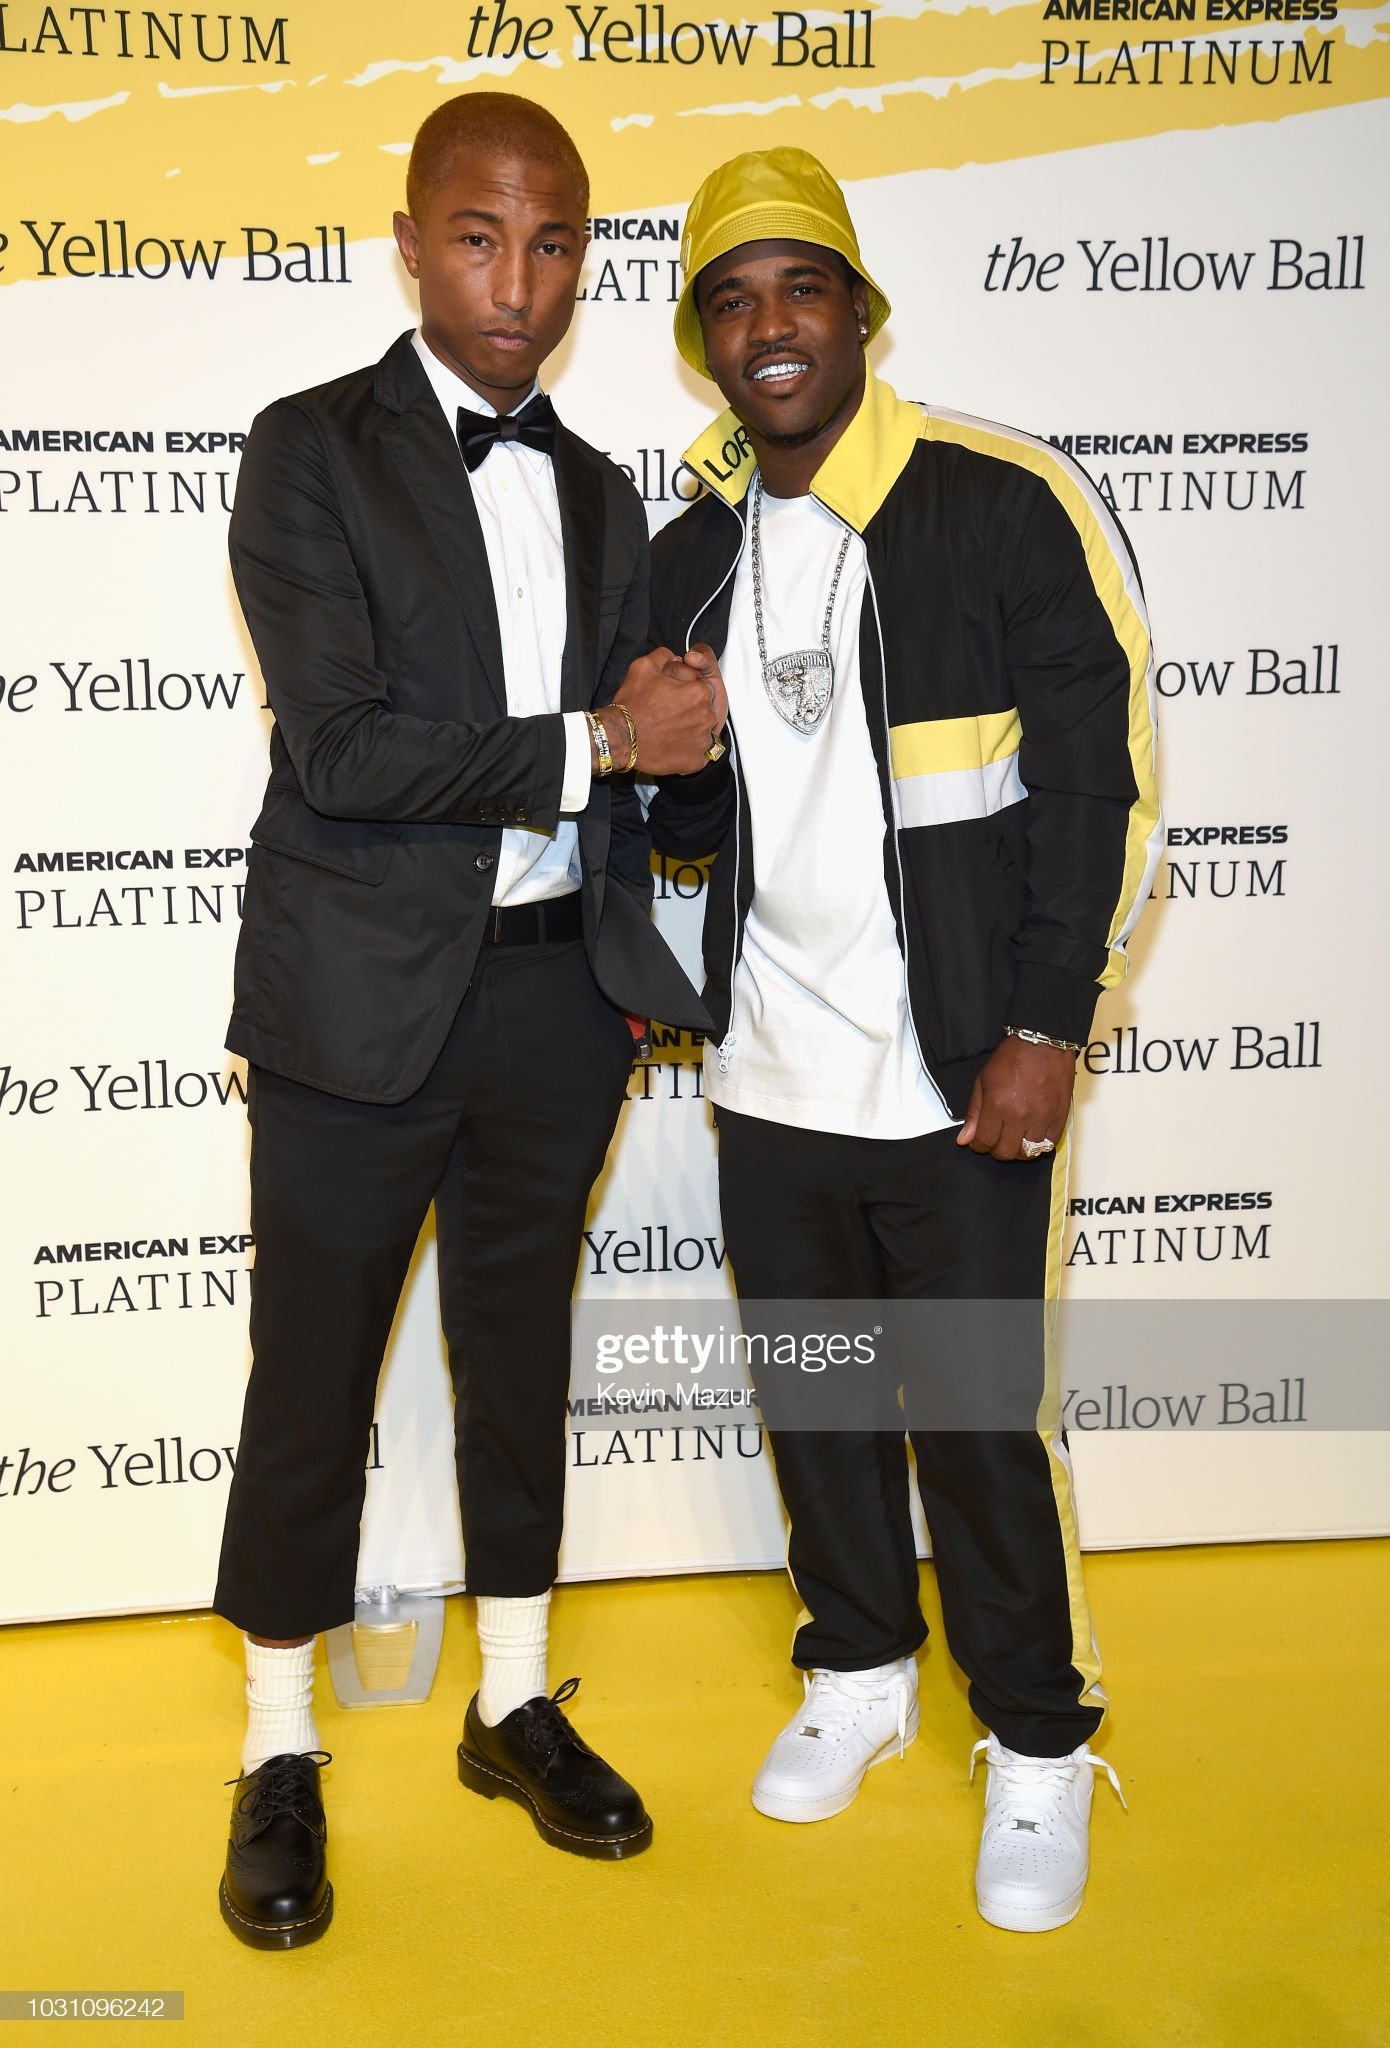 ¿Cuánto mide Pharrell Williams? - Altura - Real height Pharrell-williams-and-aap-ferg-pose-on-the-yellow-carpet-at-the-ball-picture-id1031096242?s=2048x2048